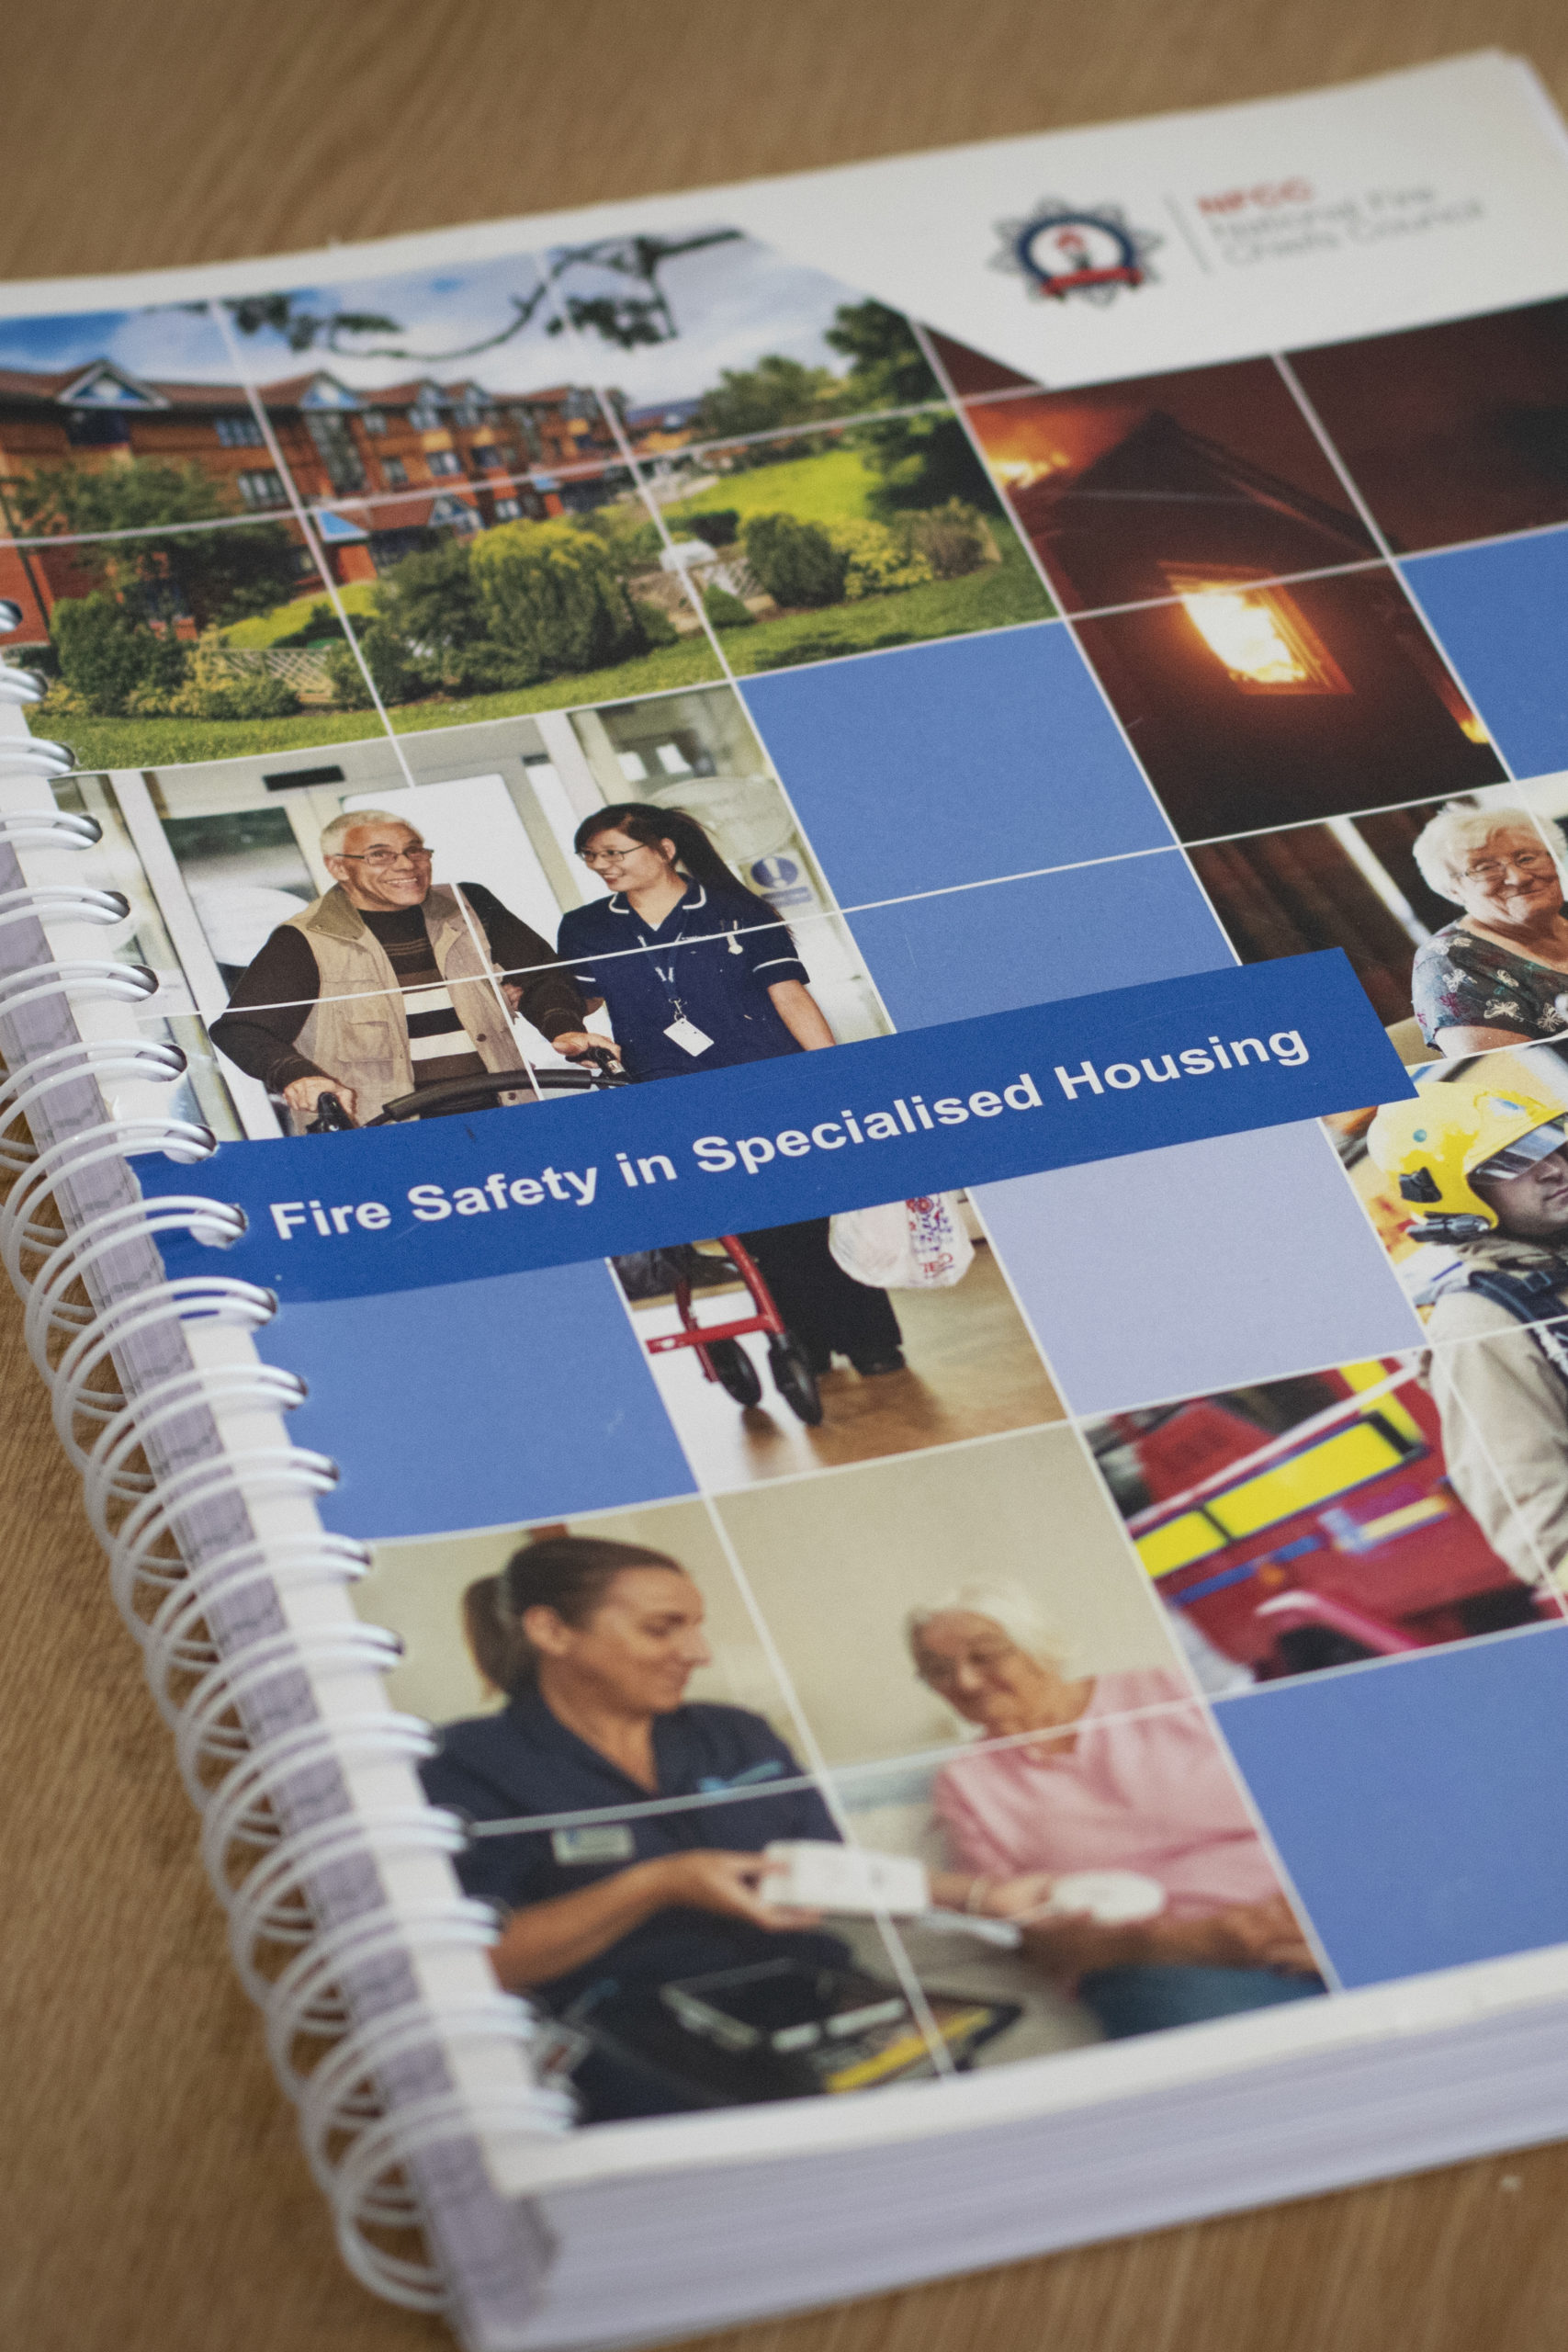 Fire Safety in Specialized Housing